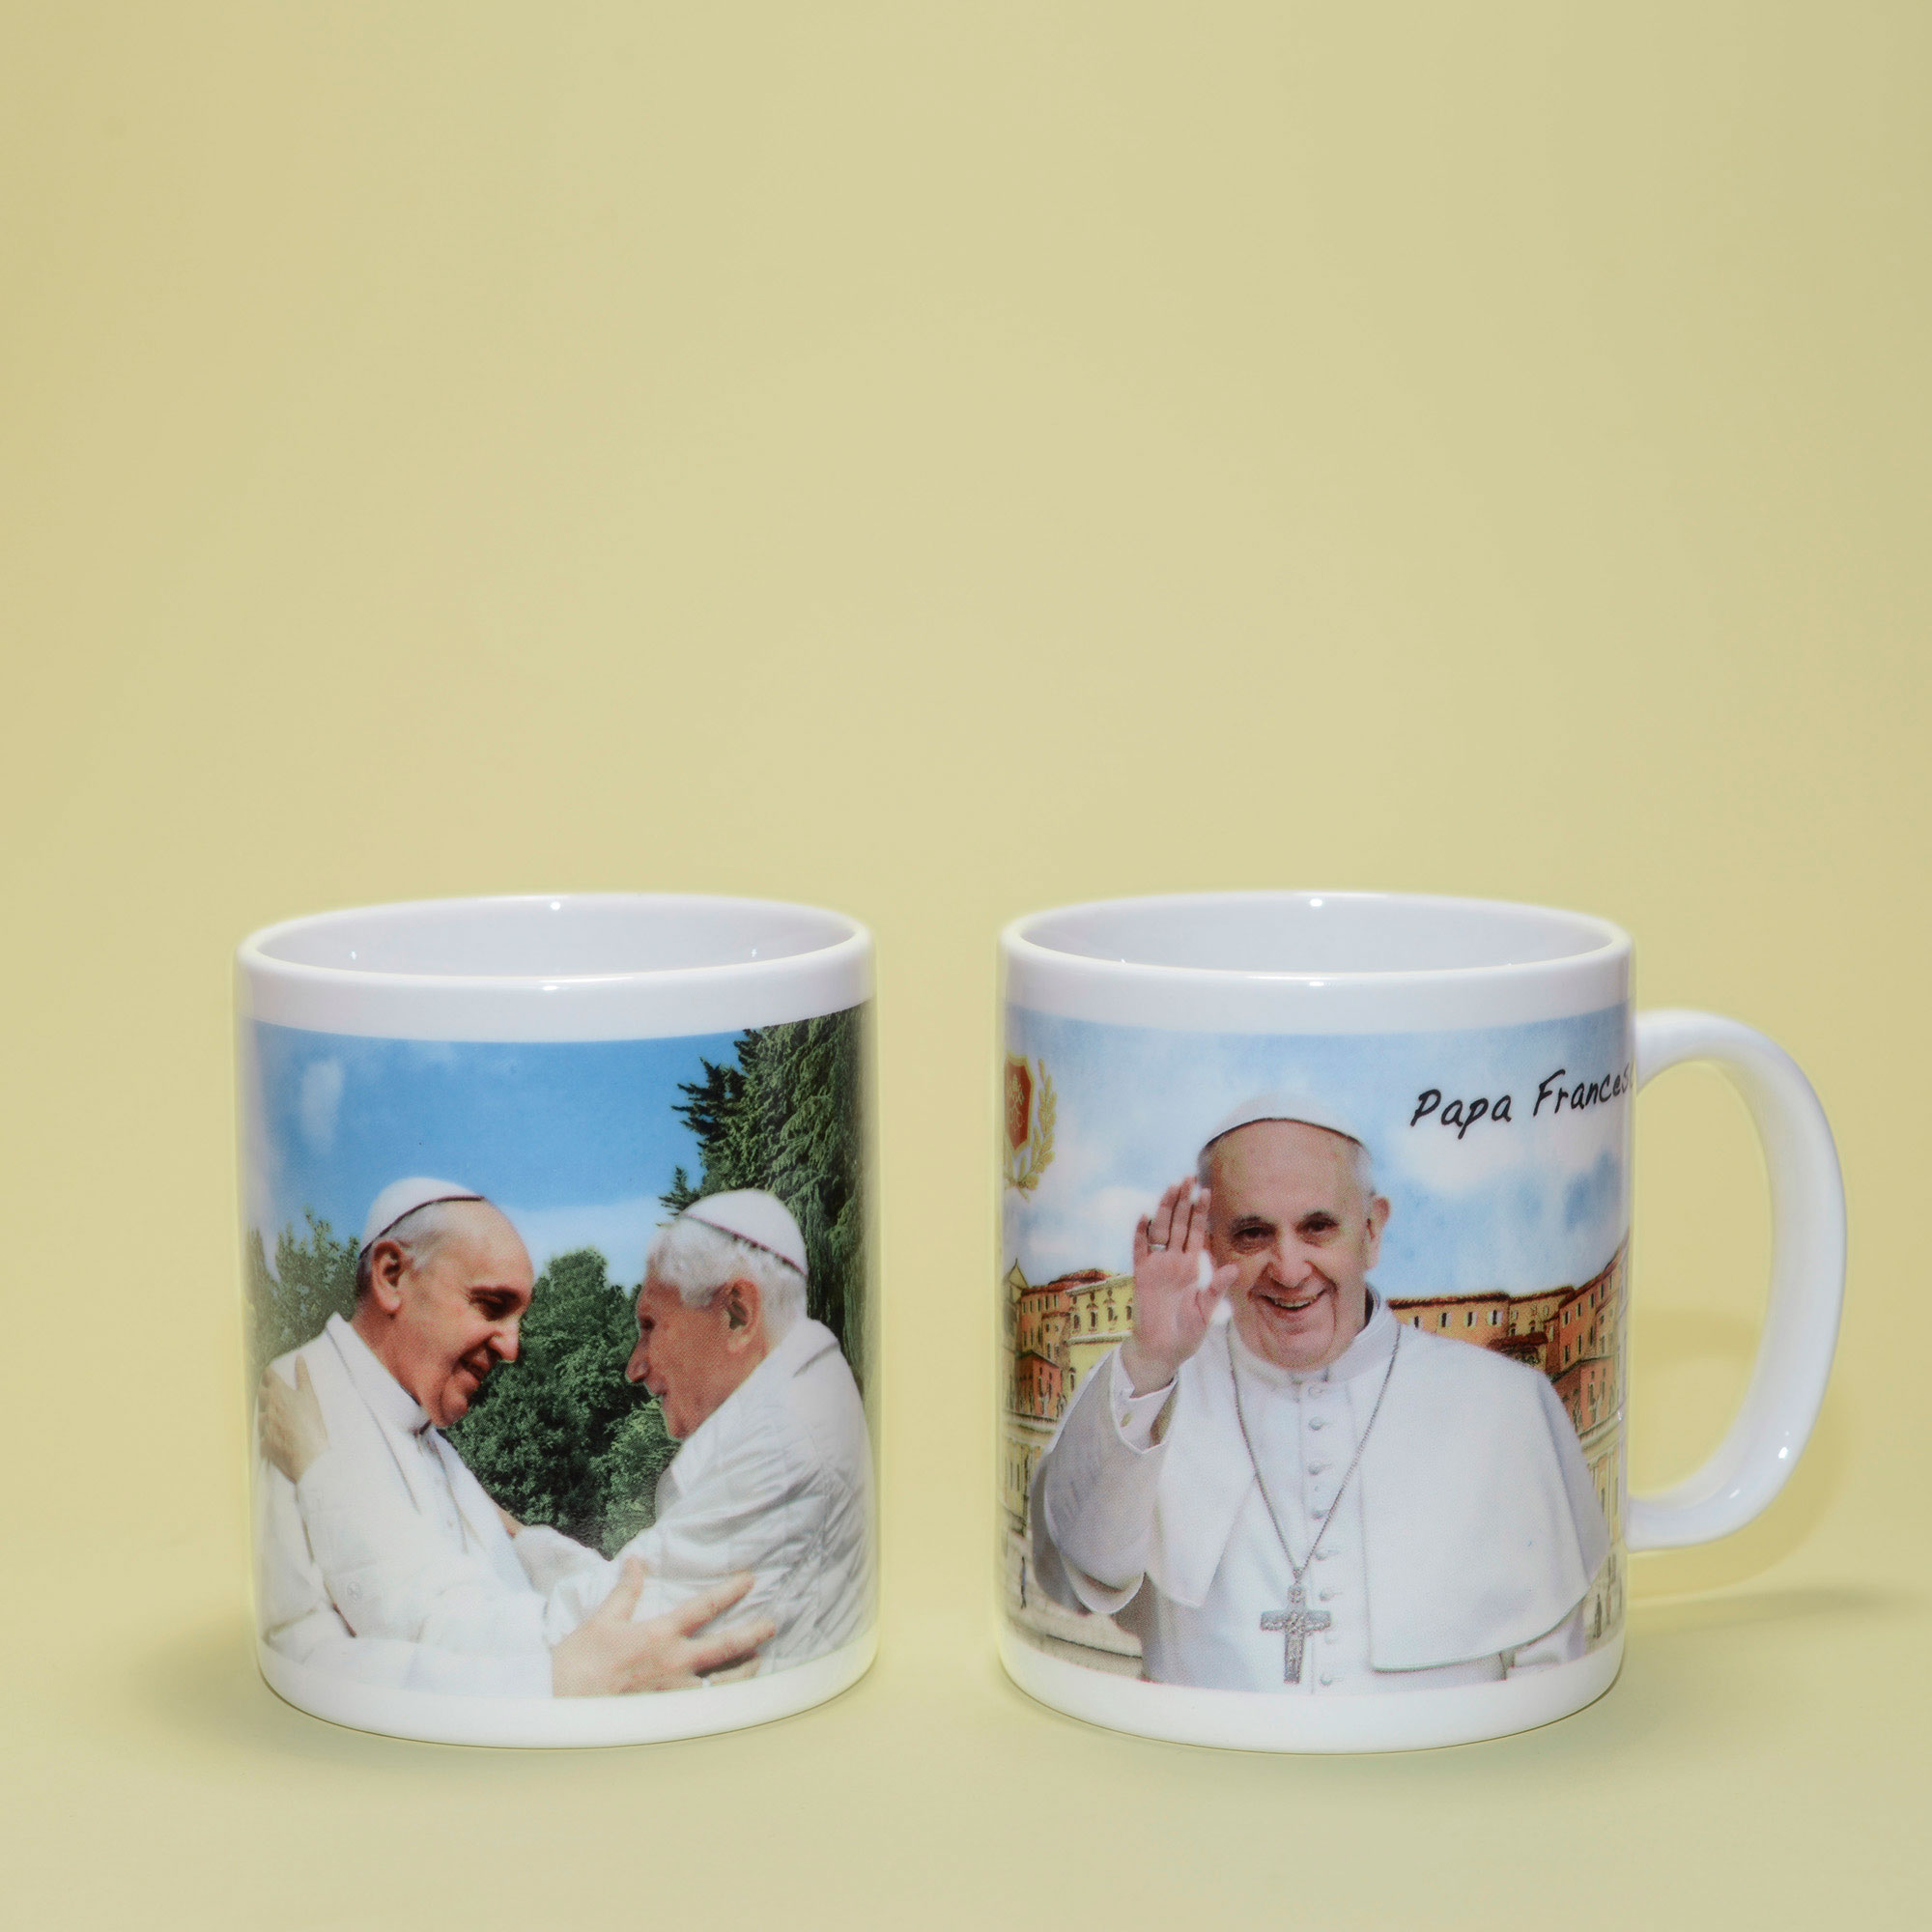 Mug with photograph of Pope Francis and Pope Emeritus Benedict XVI encounter and Pope Francis's mug.